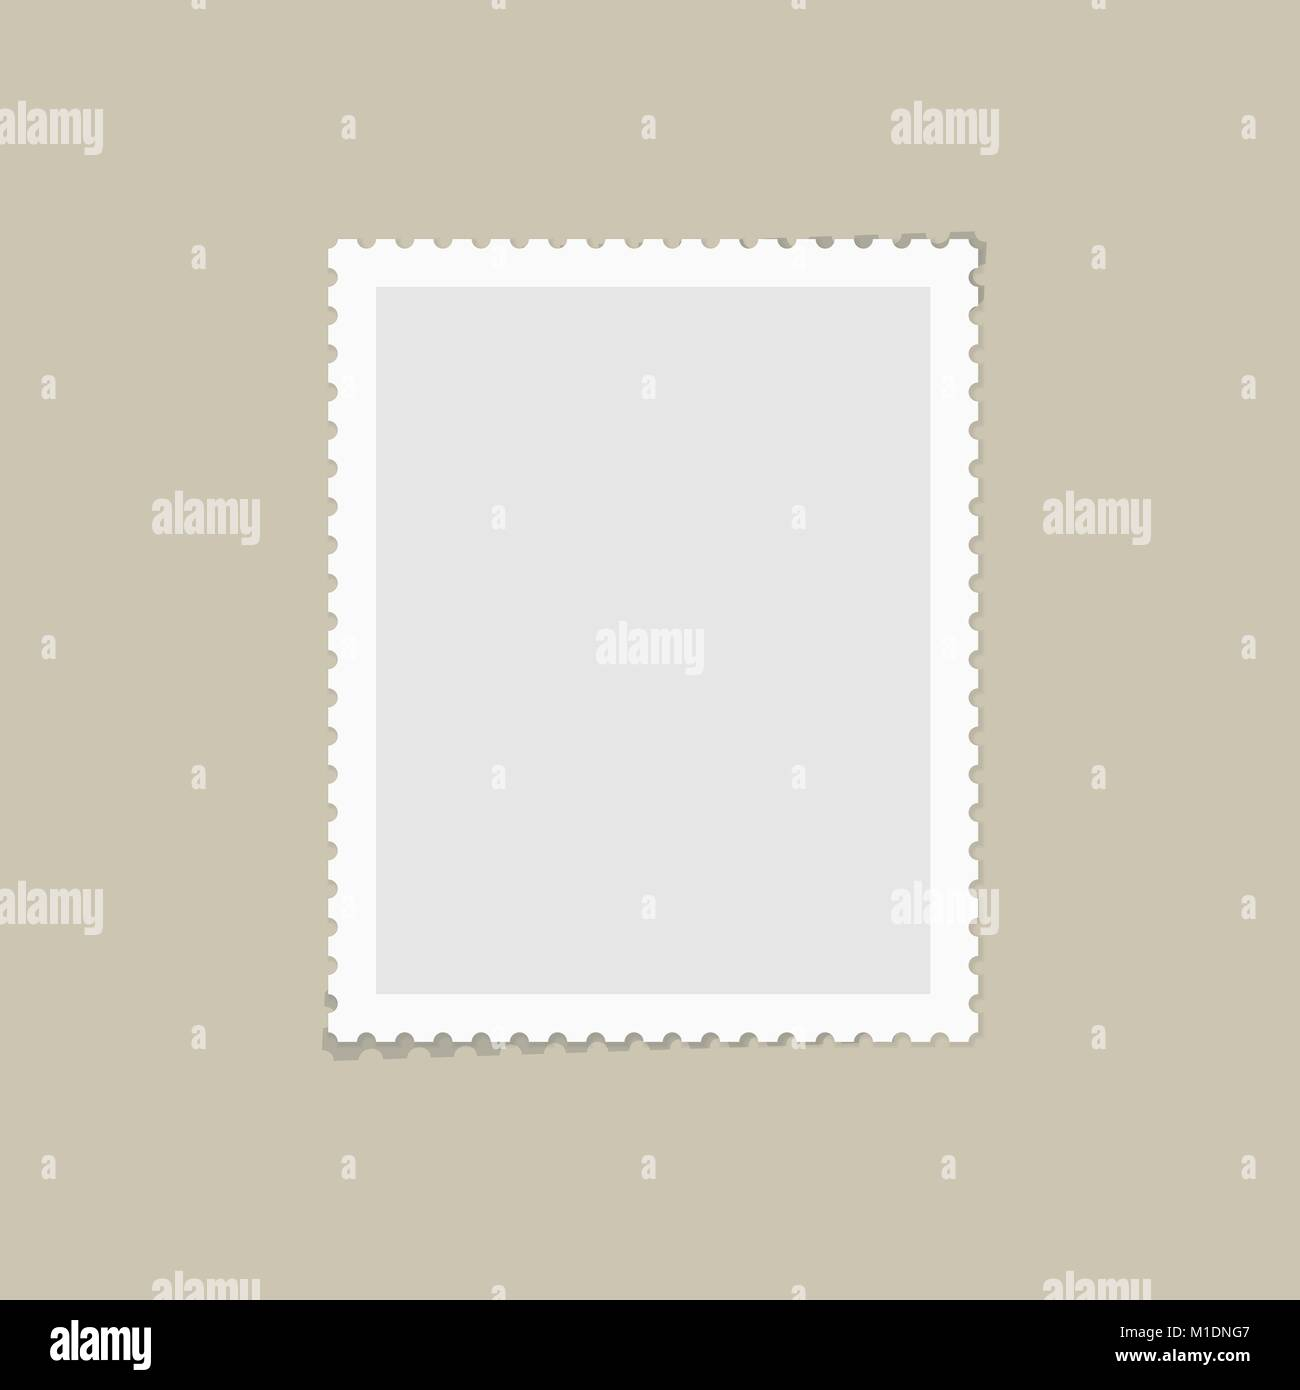 Postage stamp for postcard - Stock Vector